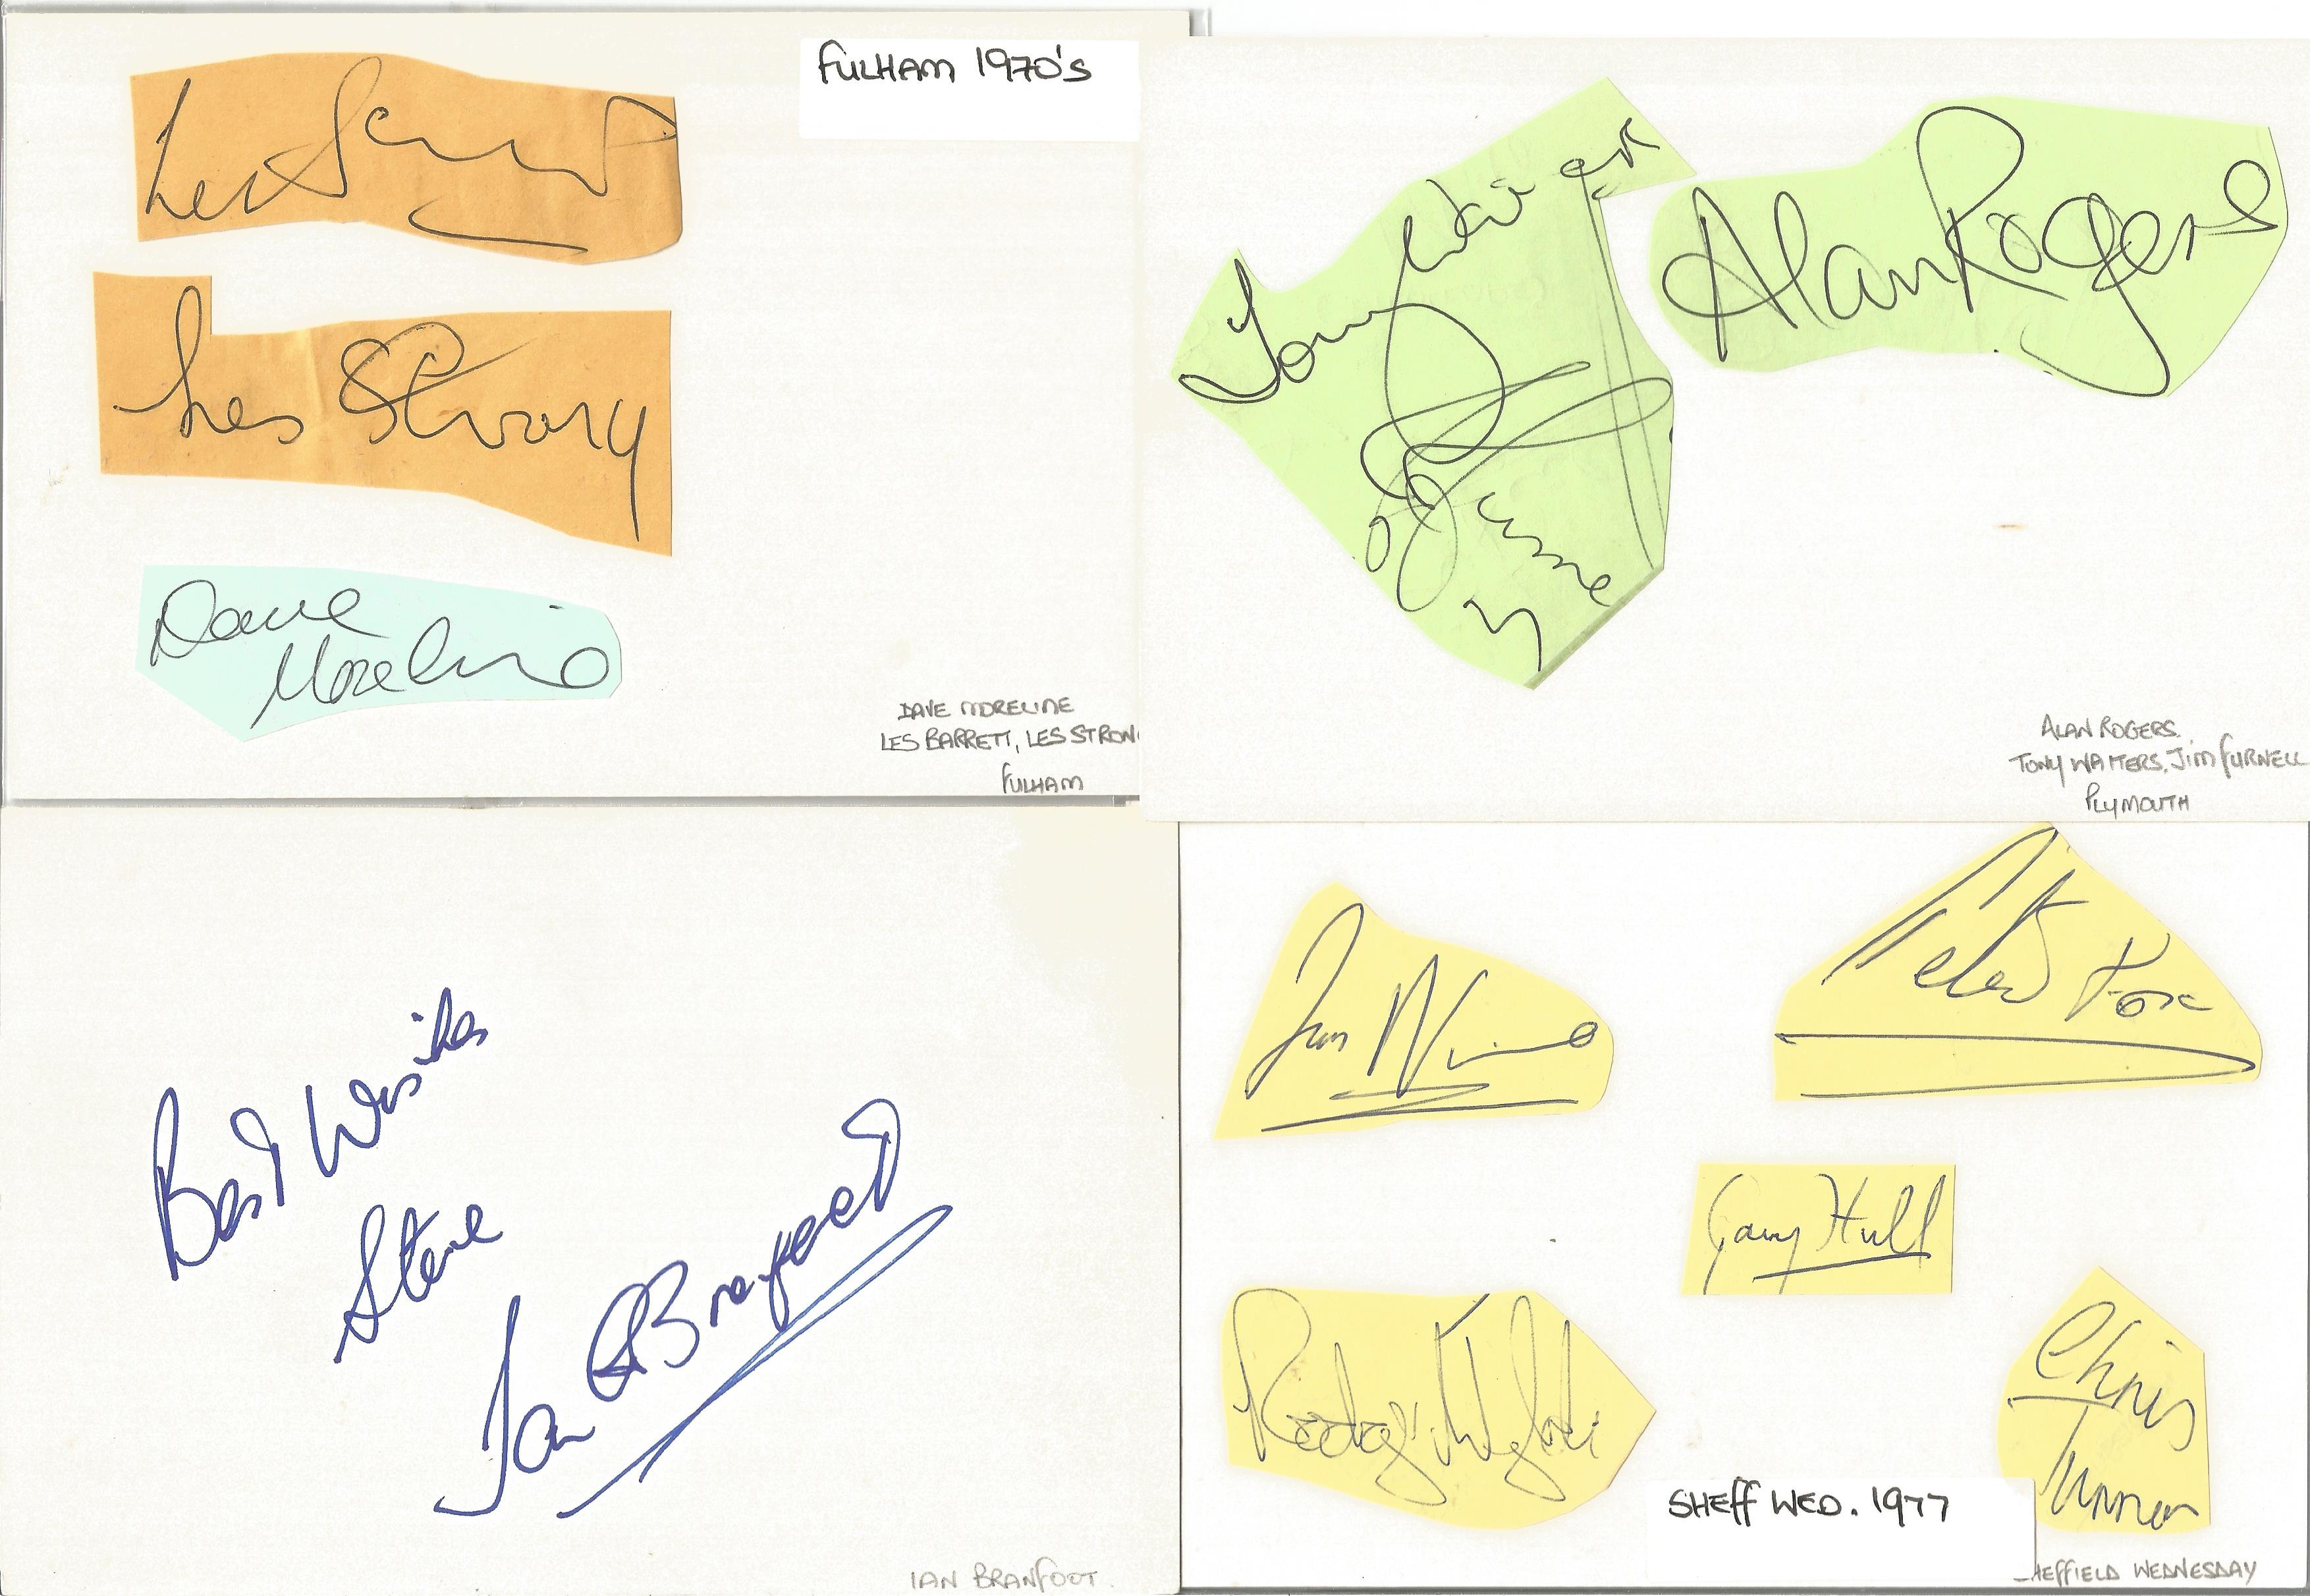 Assorted signature piece collection. 15+ included. Some of names included are Alan Rogers, Tony - Image 2 of 5